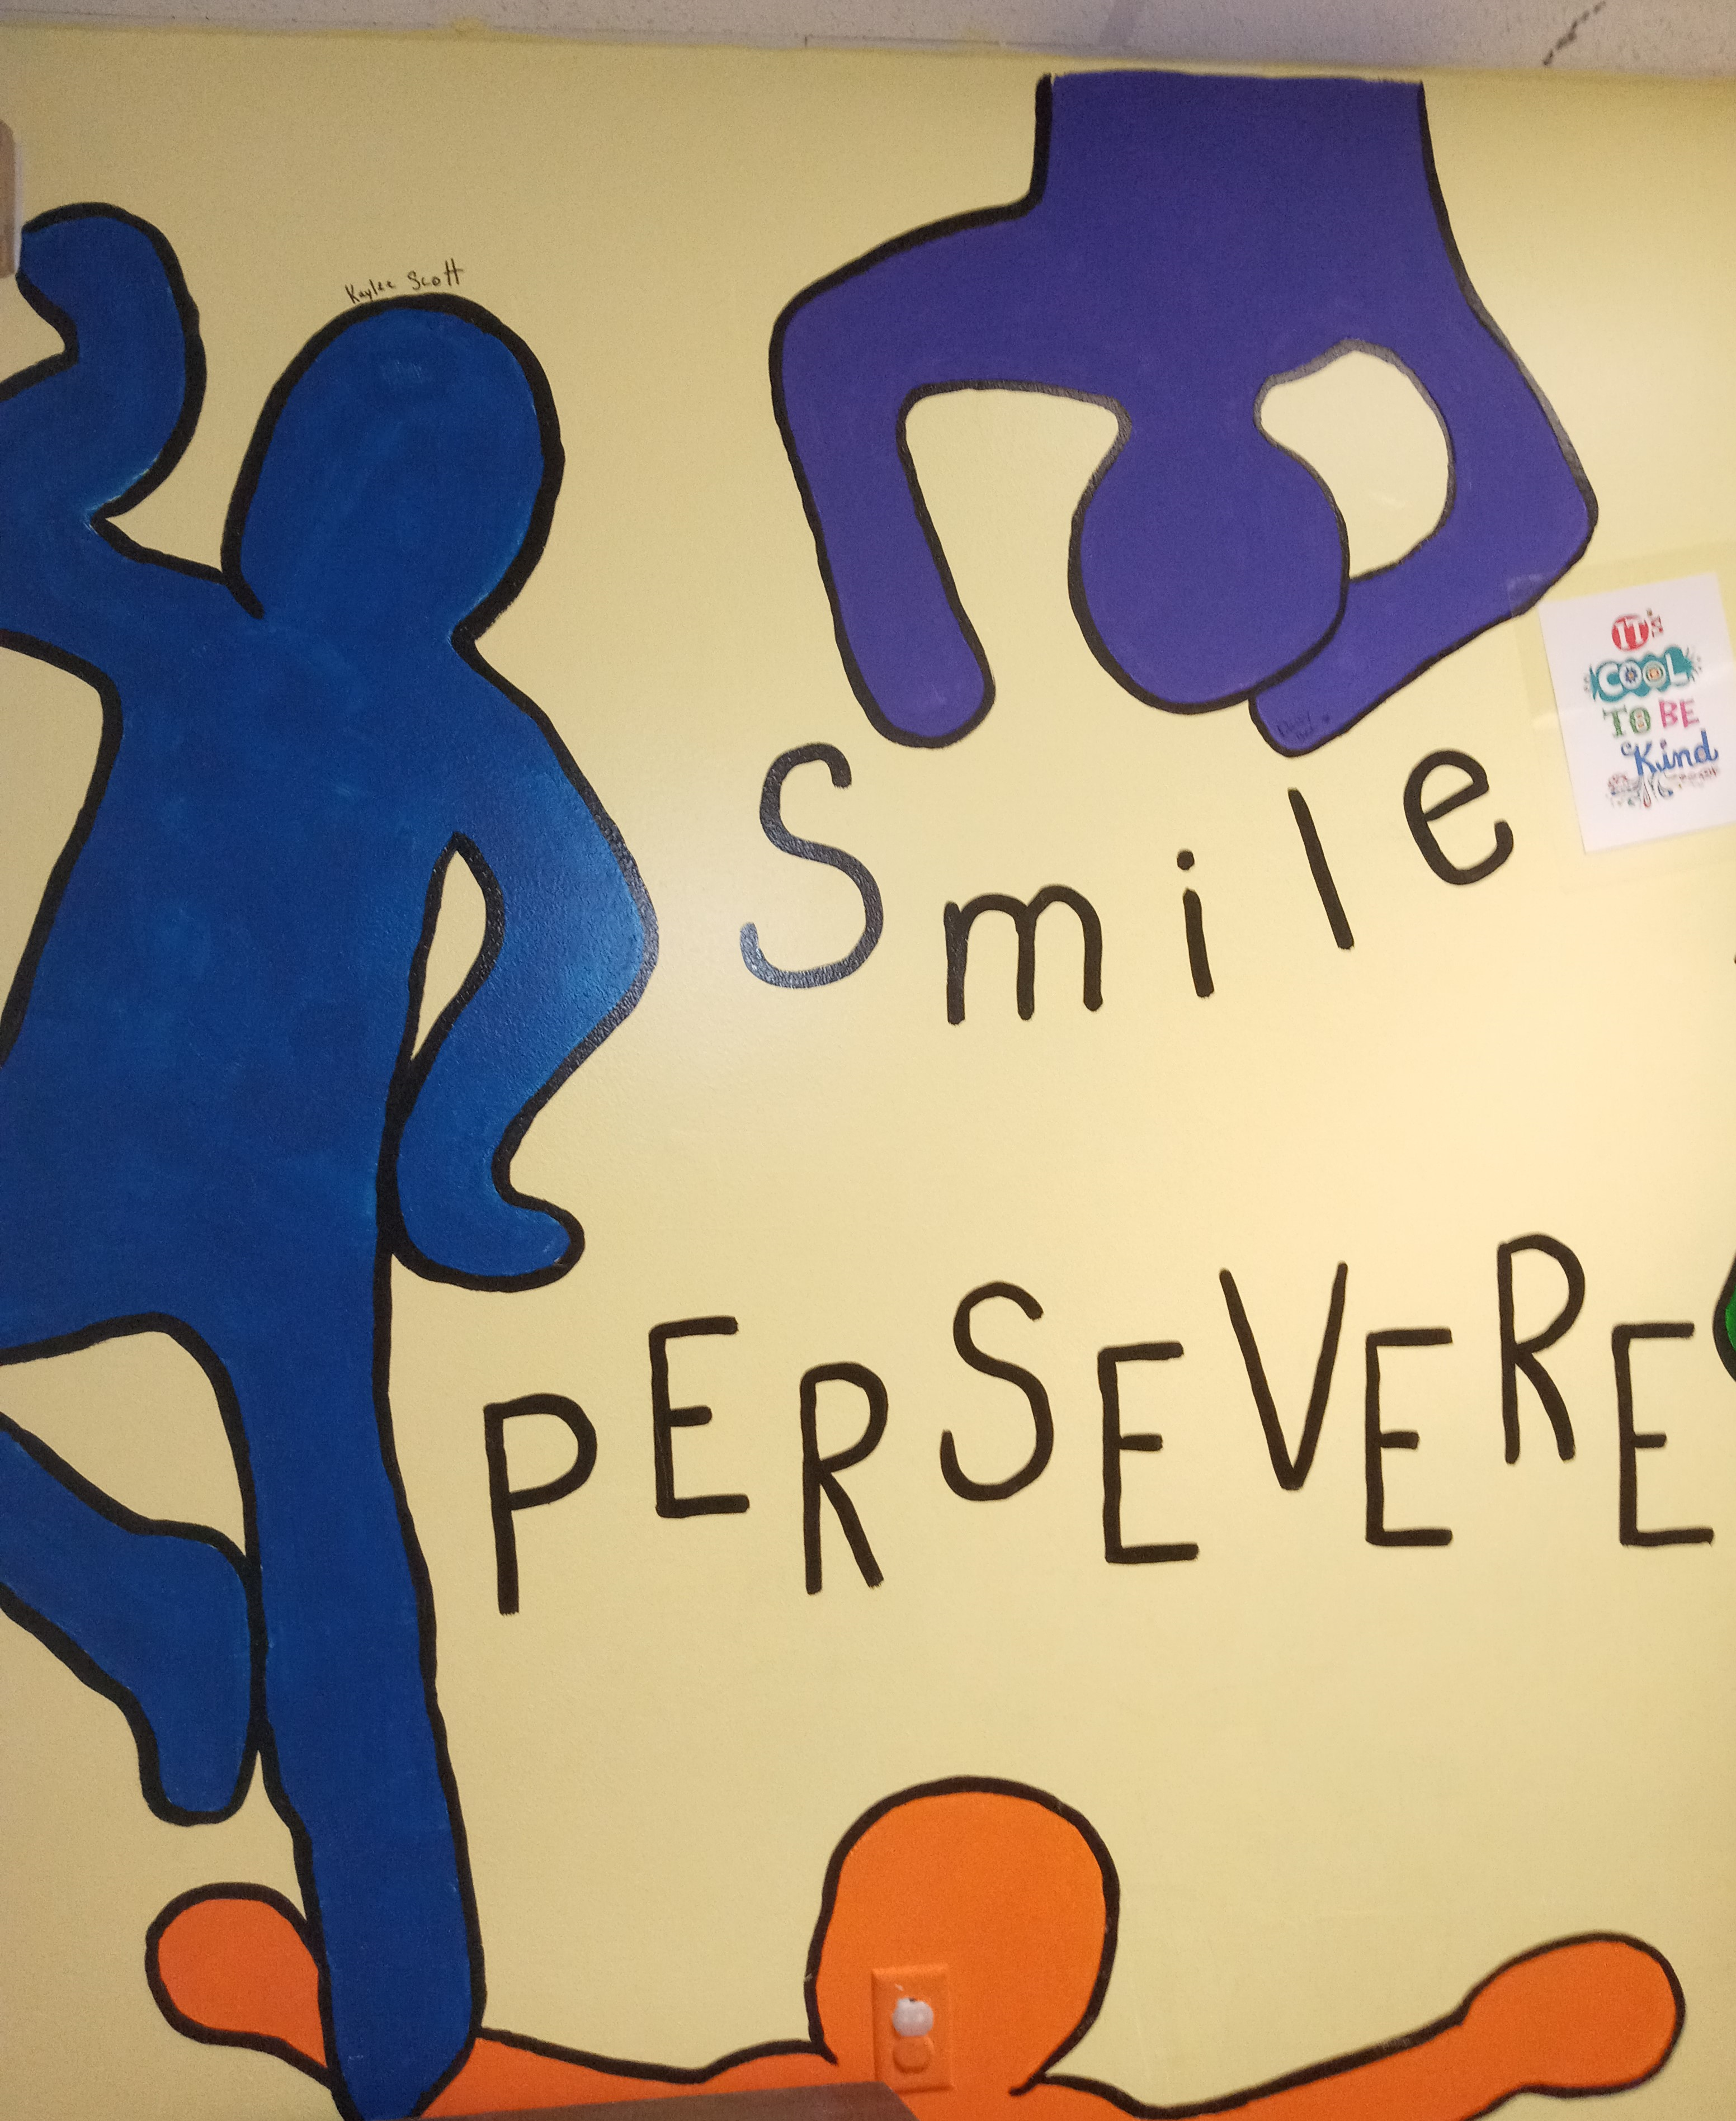 Smile and Persevere painted on the wall